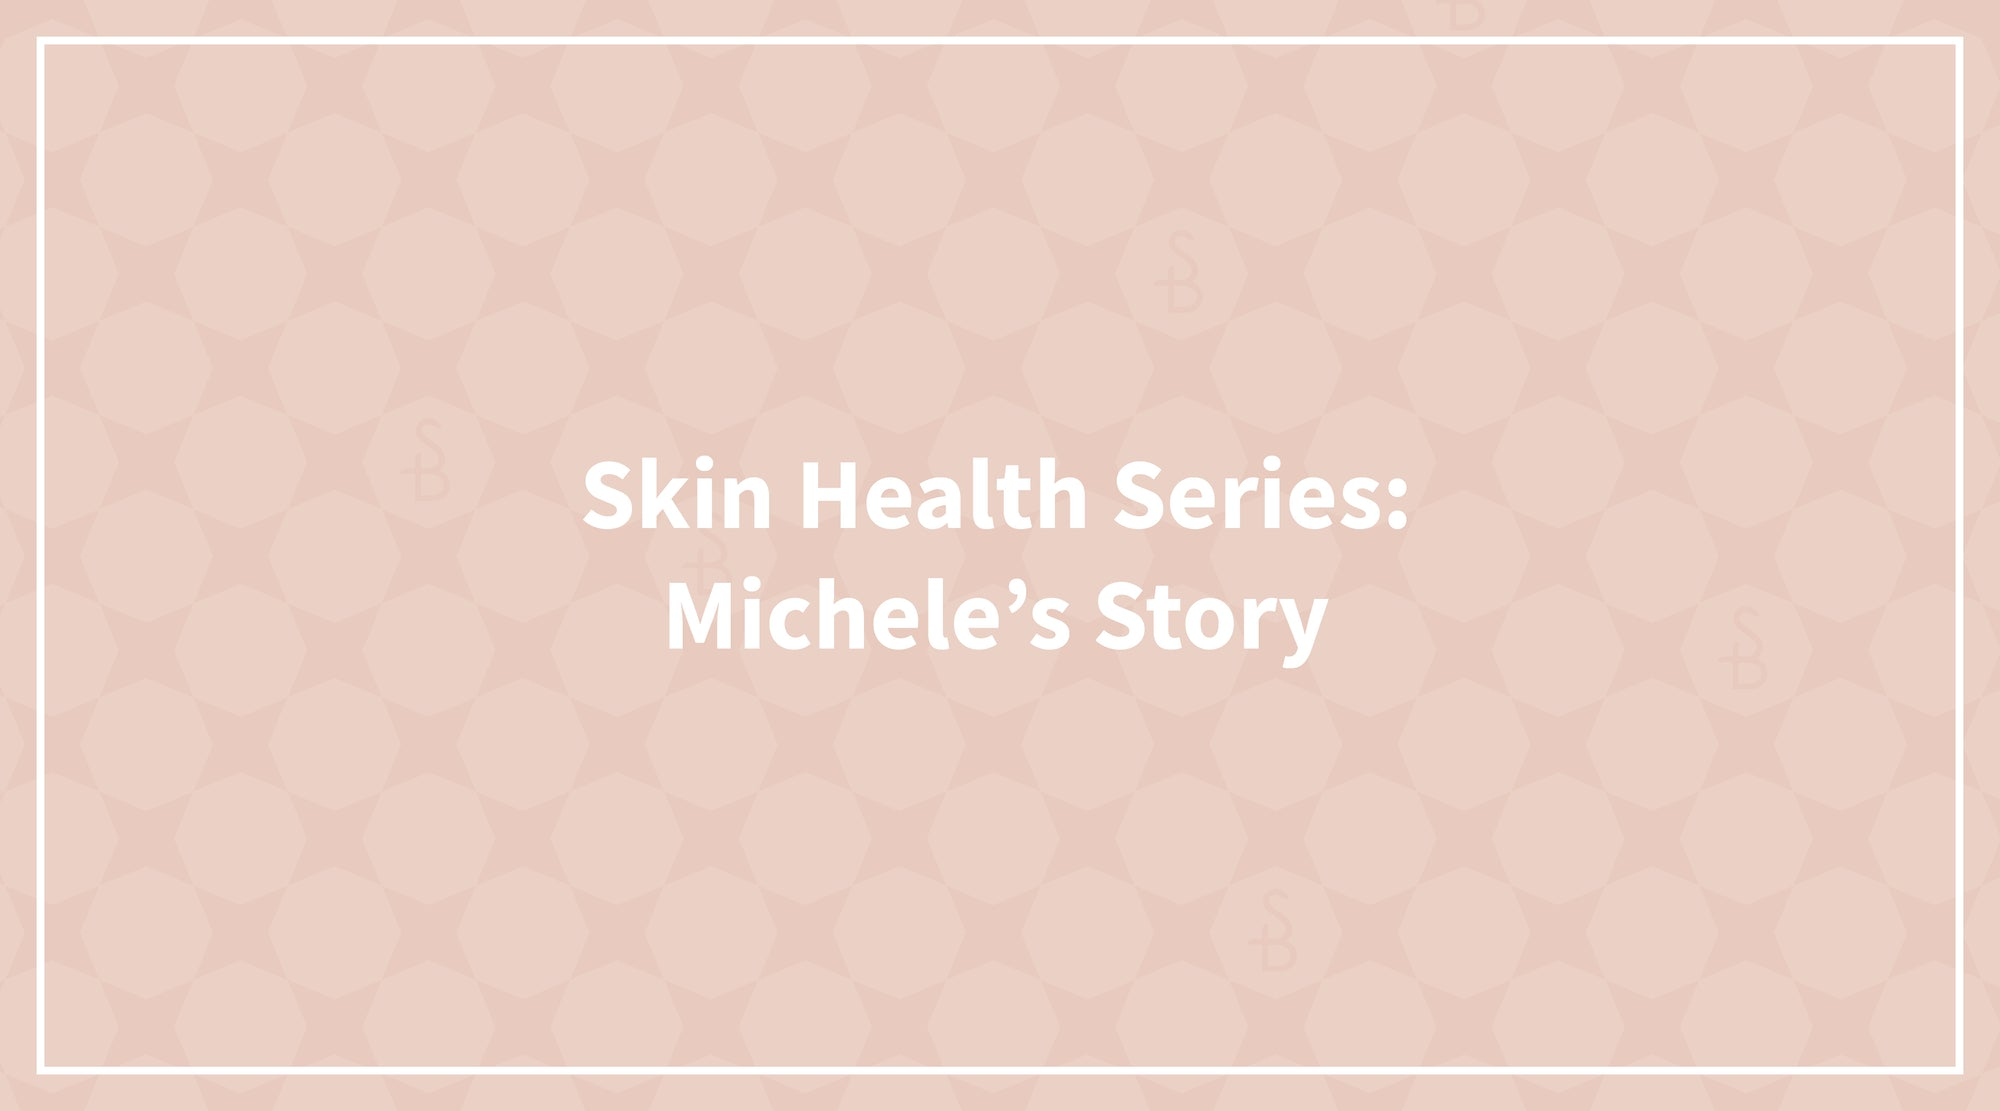 Skin Health Series: Michele's Story